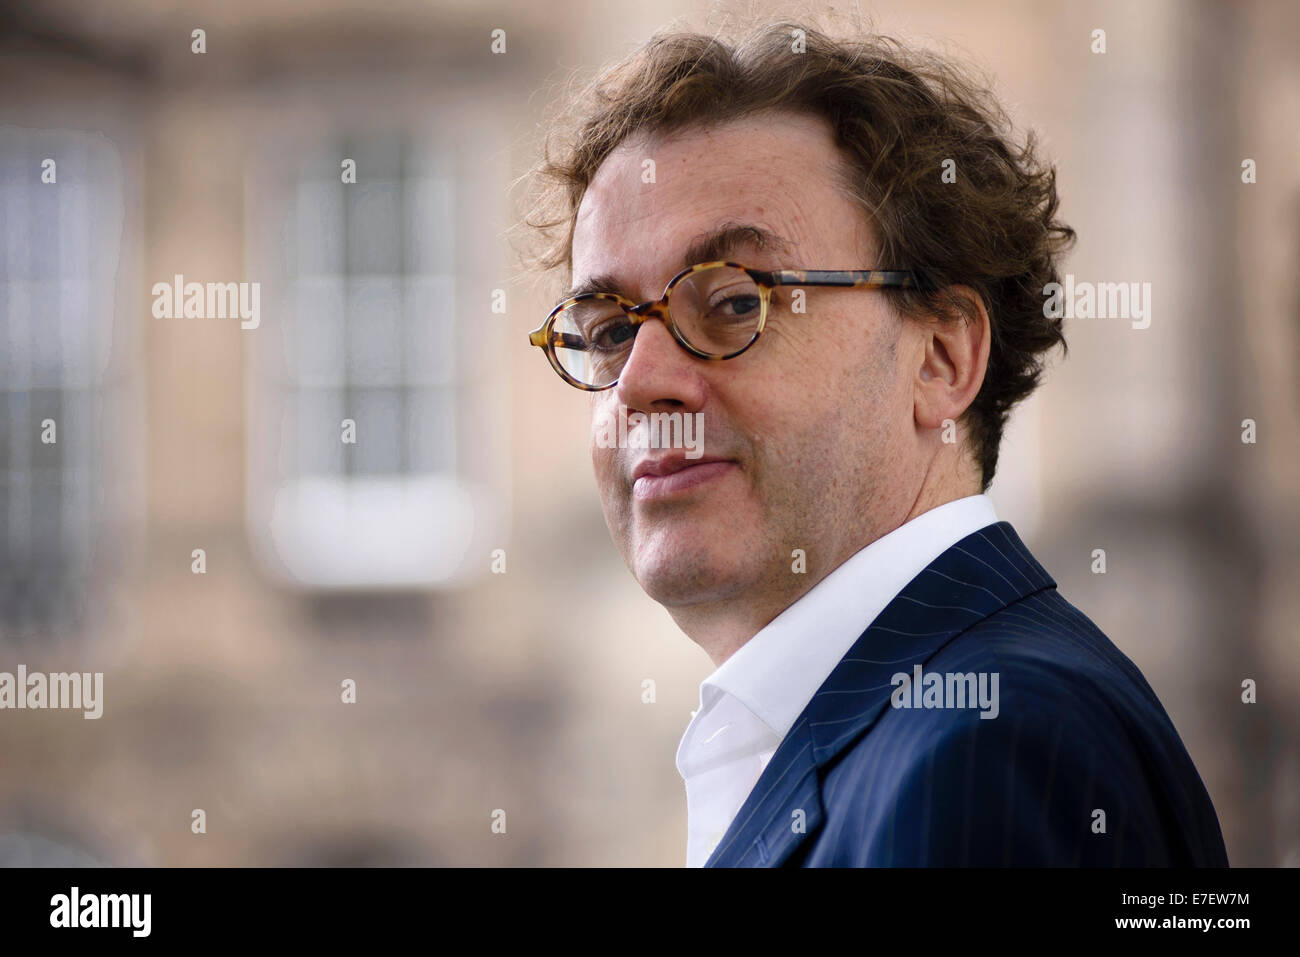 Composer and festival director Jonathan Mills appears at the Edinburgh International Book Festival. - Stock Image